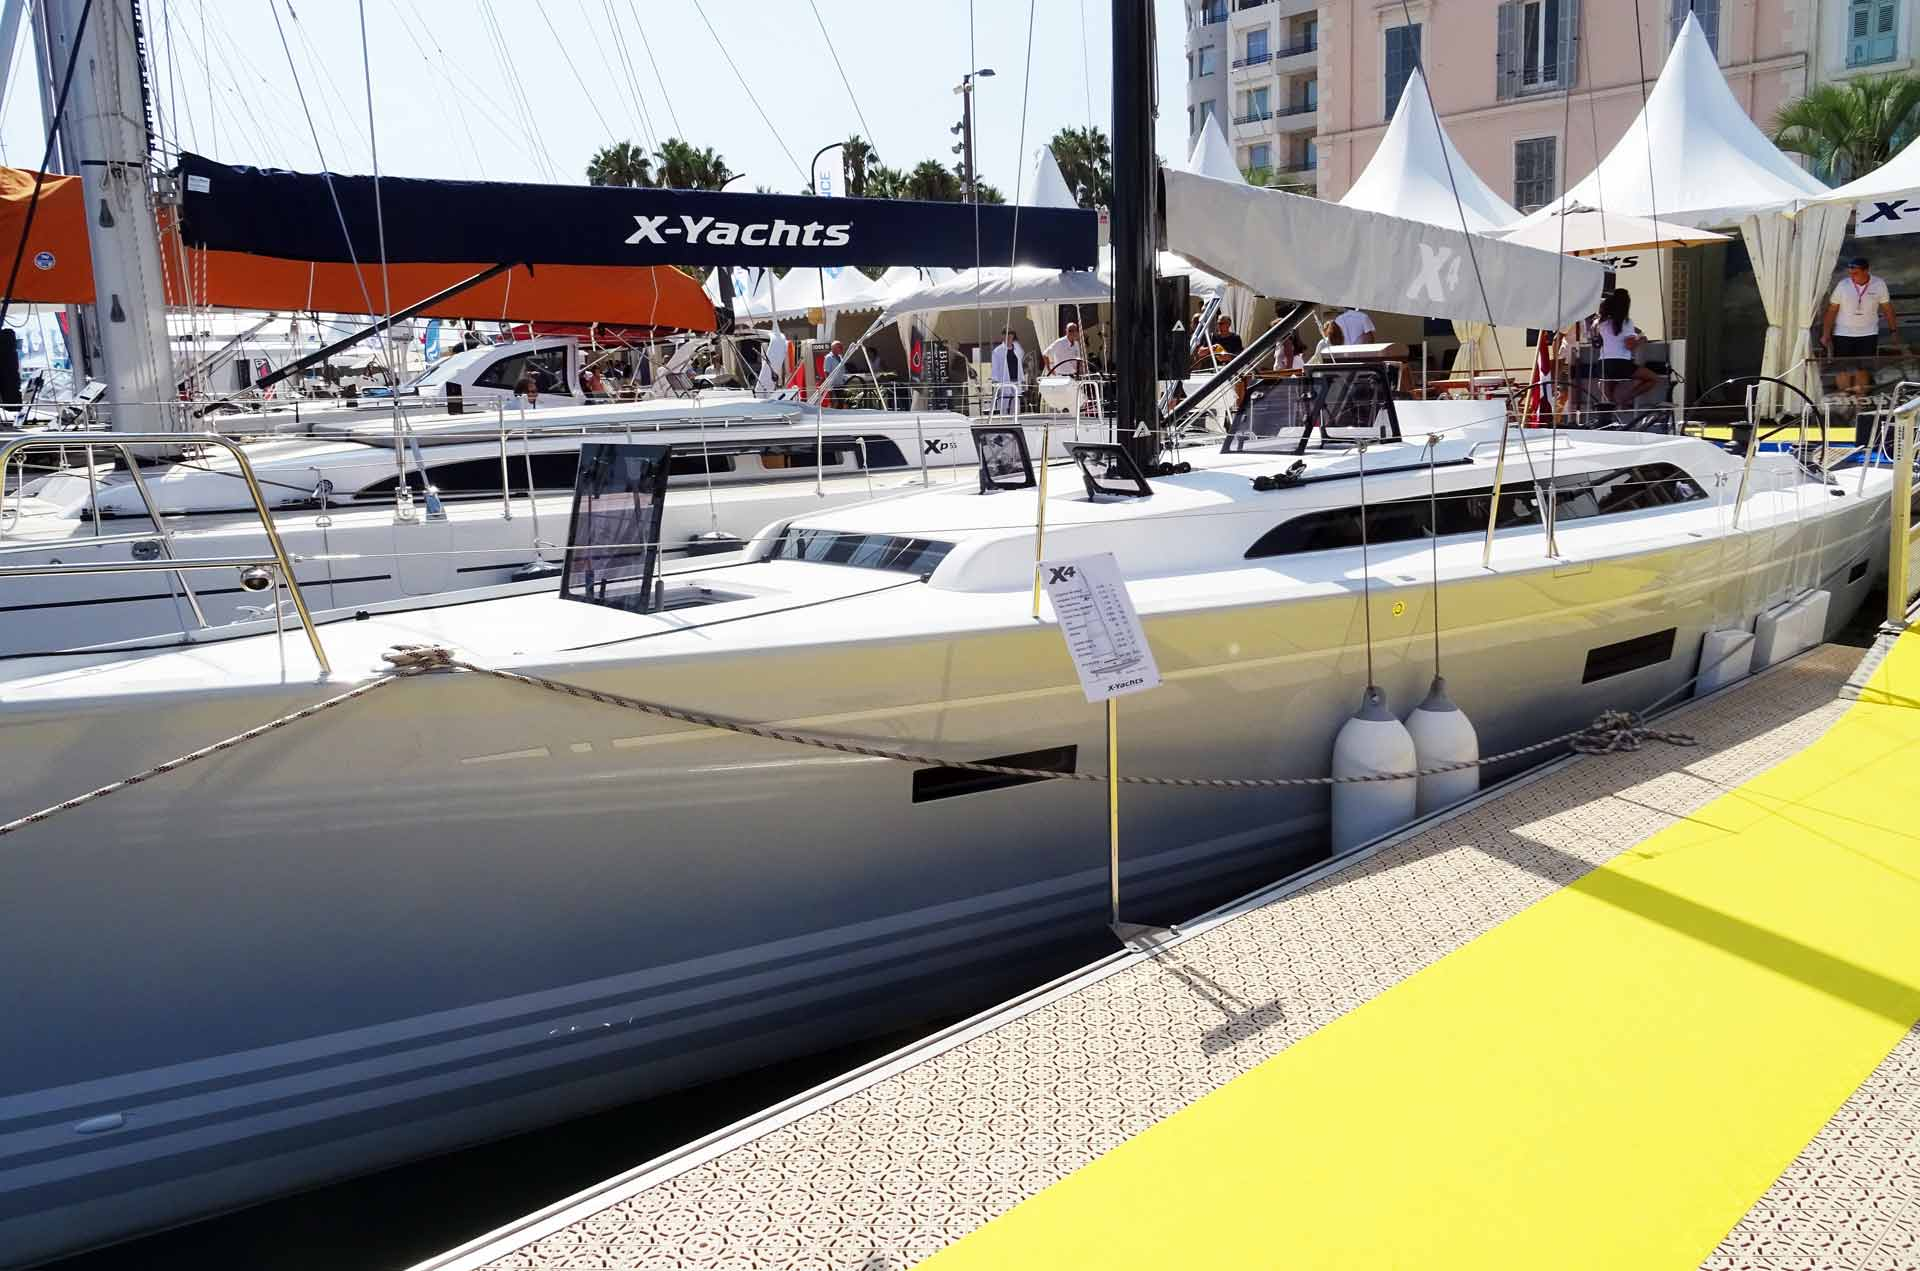 The brand new X4 by X-Yachts. I know her from my visit at the yard.